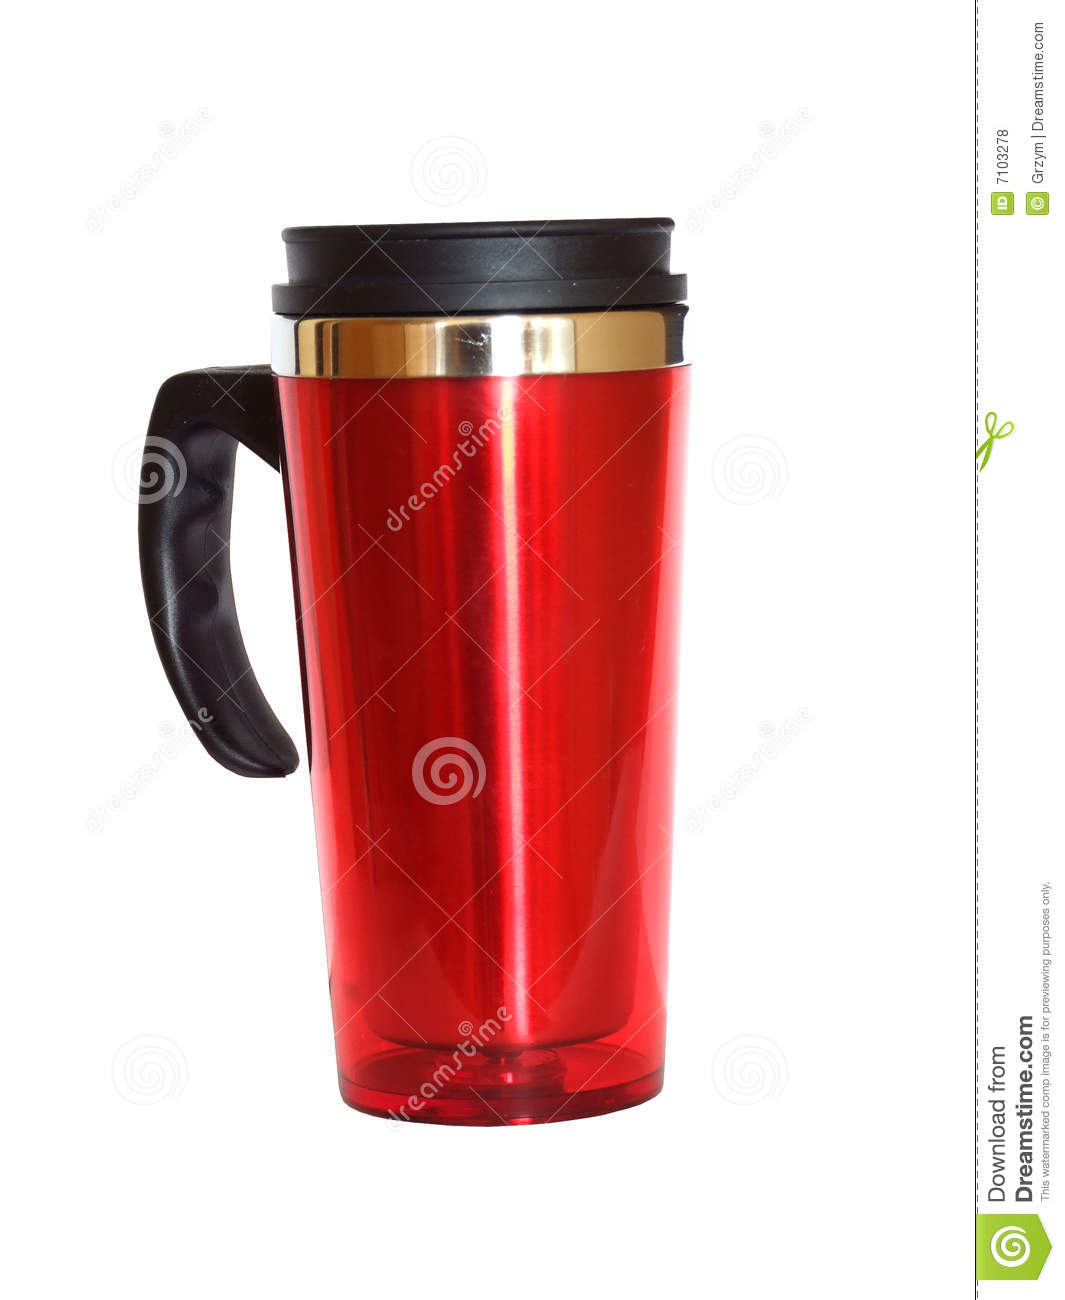 Thermal Cup Royalty Free Stock Photos Image 7103278